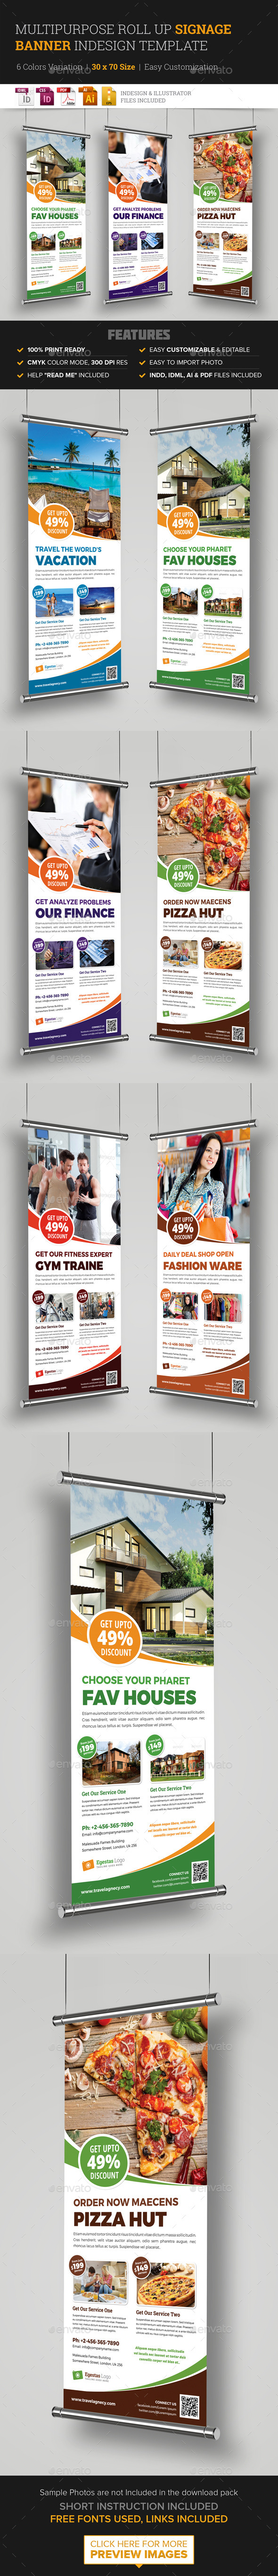 Multipurpose Roll Up Banner Signage InDesign